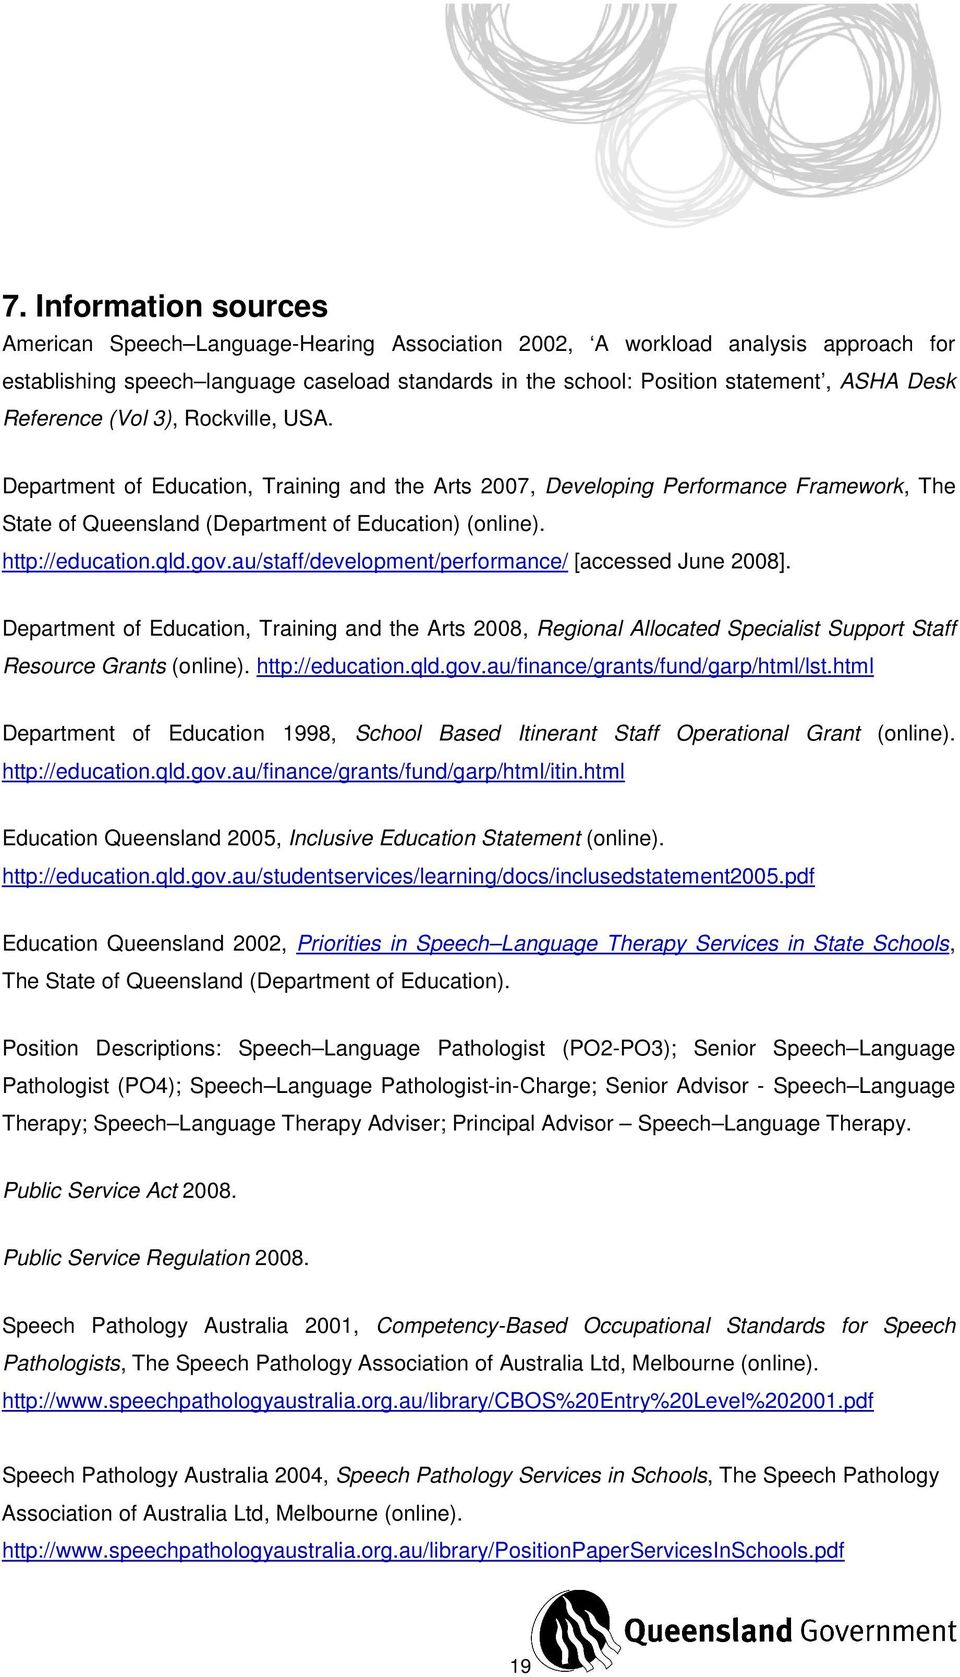 qld.gov.au/staff/development/performance/ [accessed June 2008]. Department of Education, Training and the Arts 2008, Regional Allocated Specialist Support Staff Resource Grants (online).